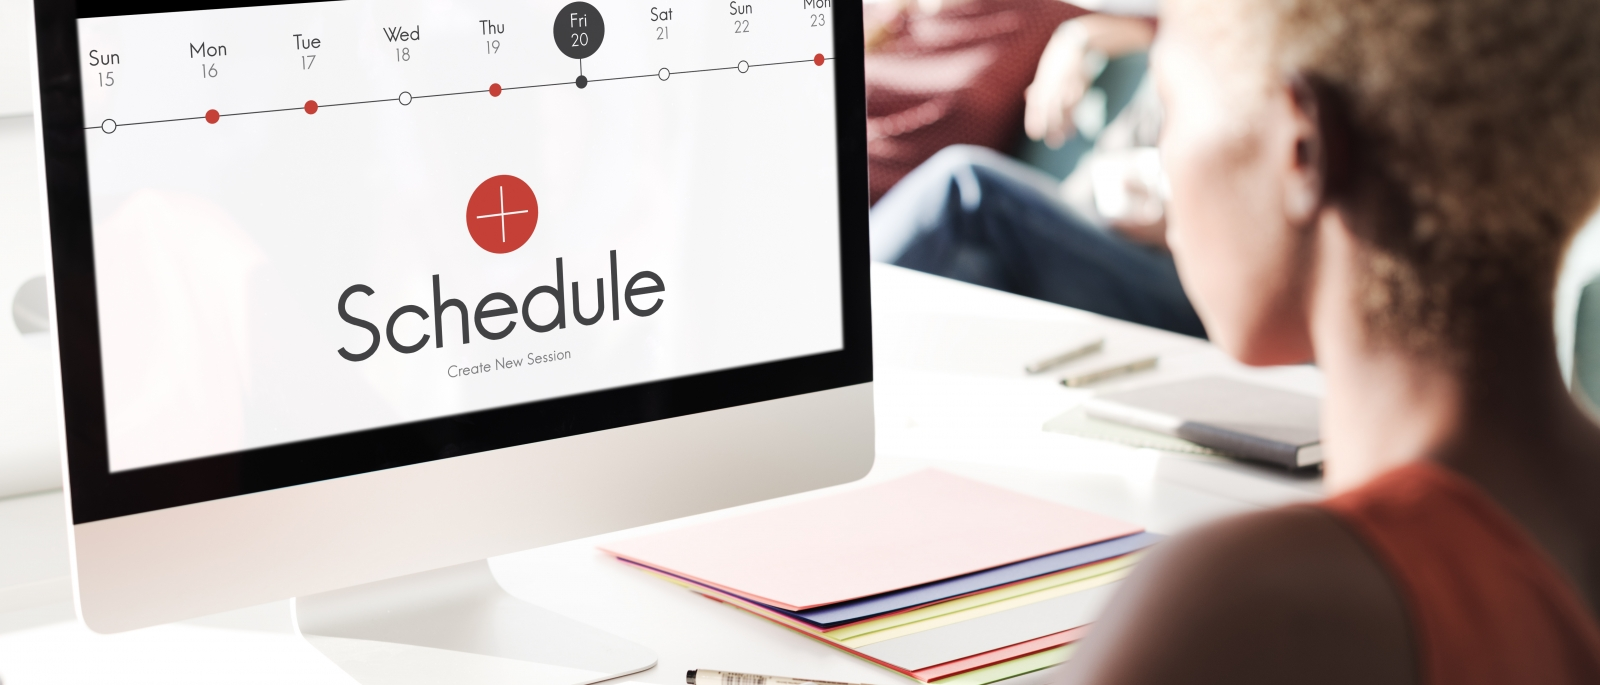 Time Management: Regaining Control of Your Schedule at UNH